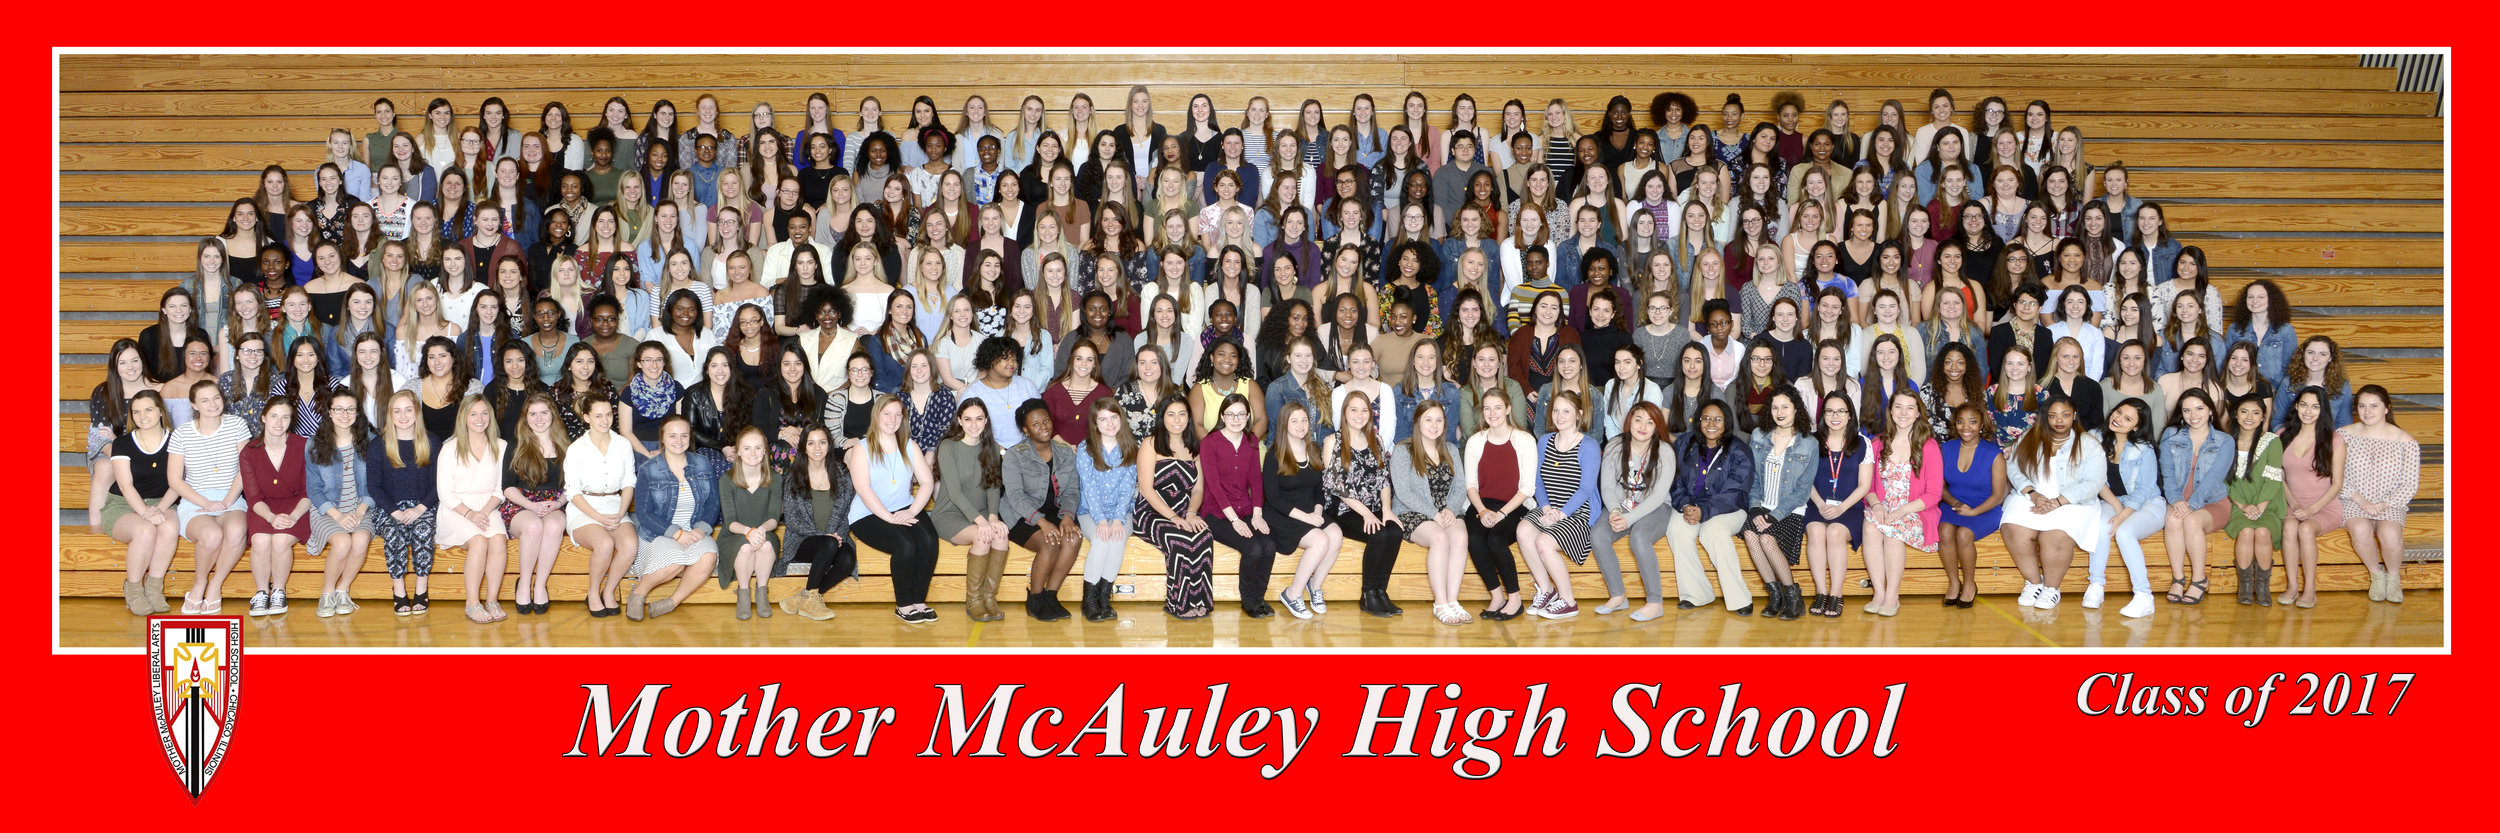 mother mcauley pano final 8x24.jpg